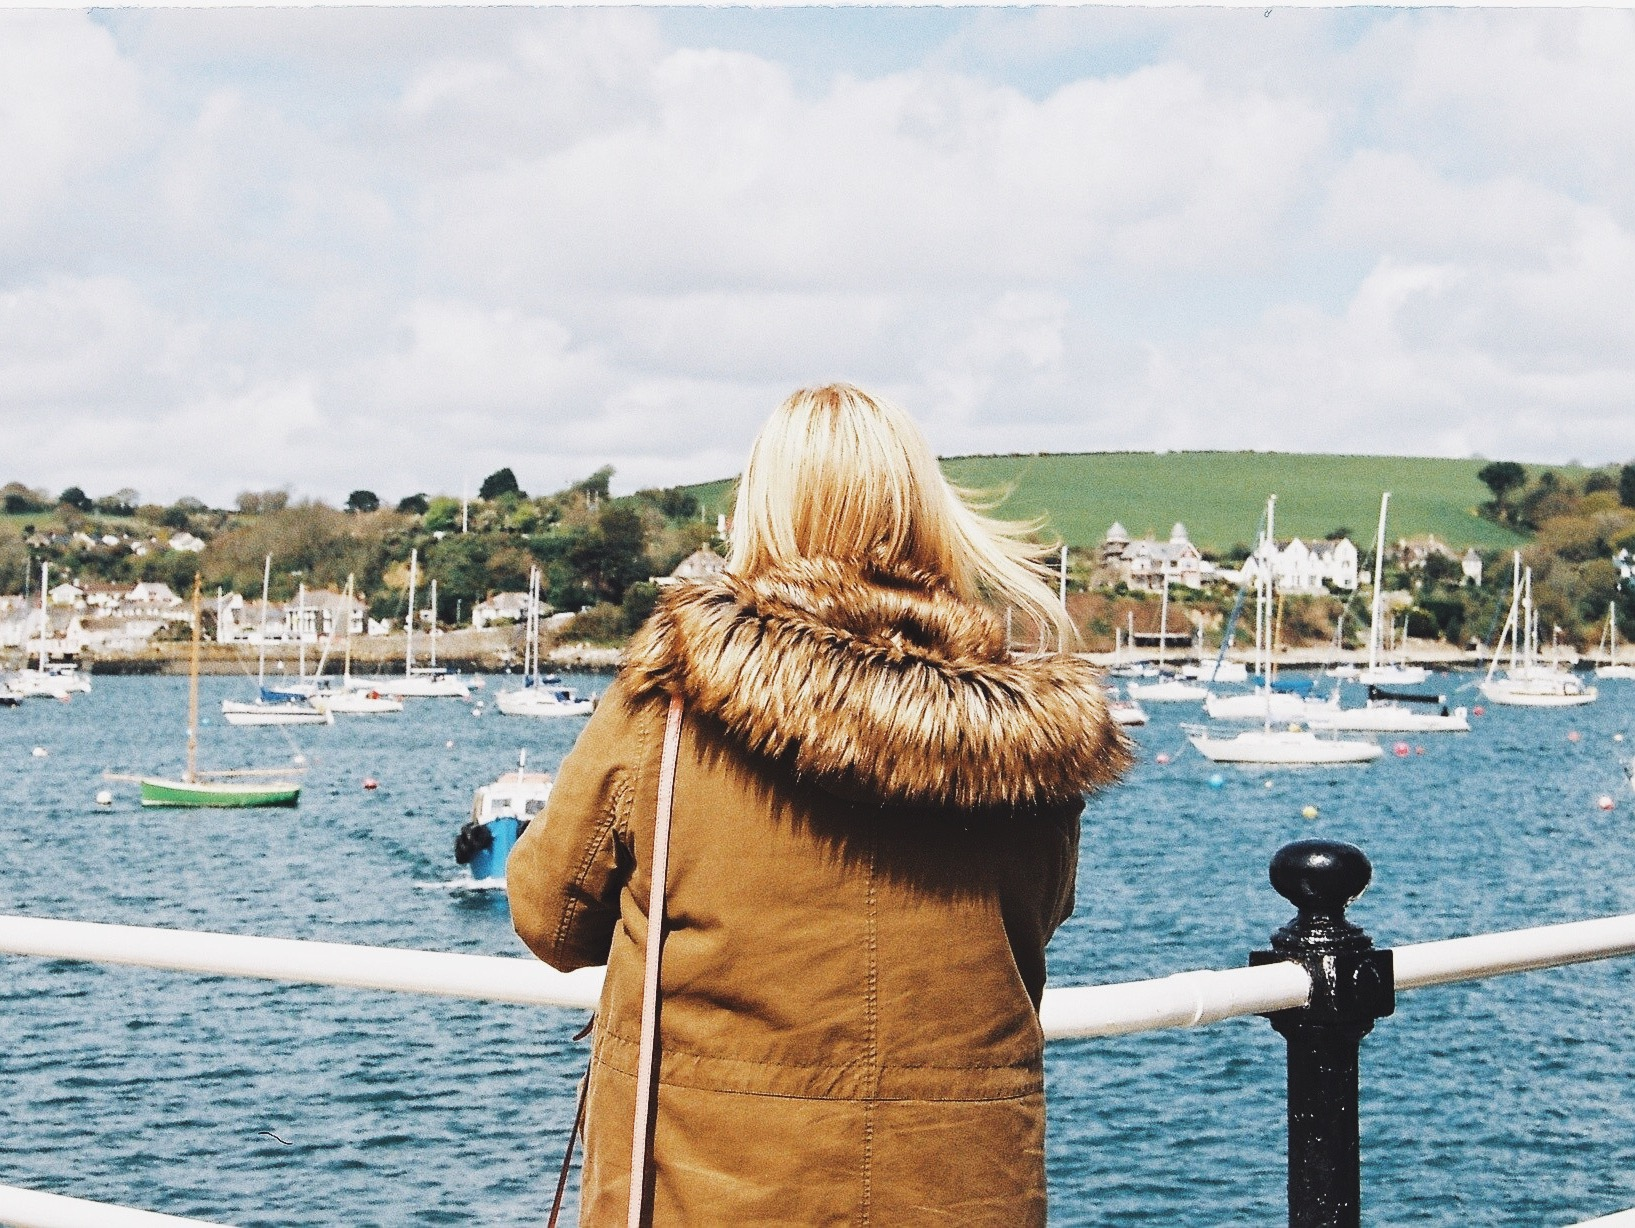 falmouth-cornwall-harbour-travel-film-35mm